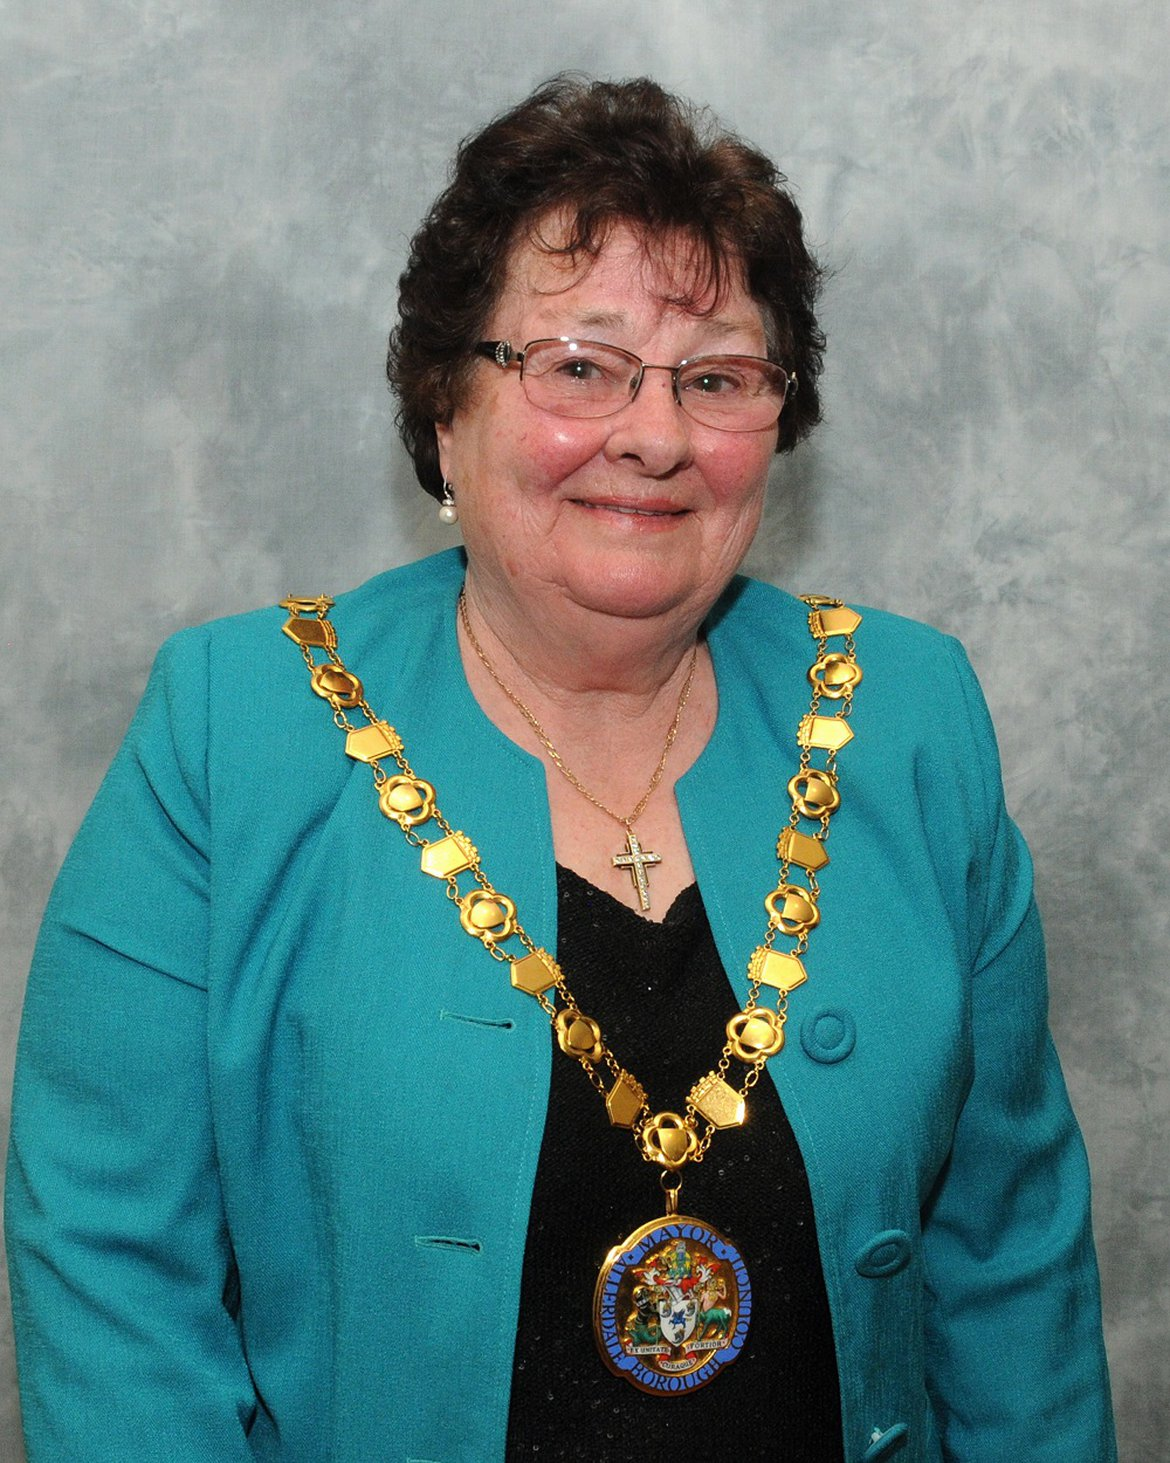 Mayor Cllr Hilary Harrington